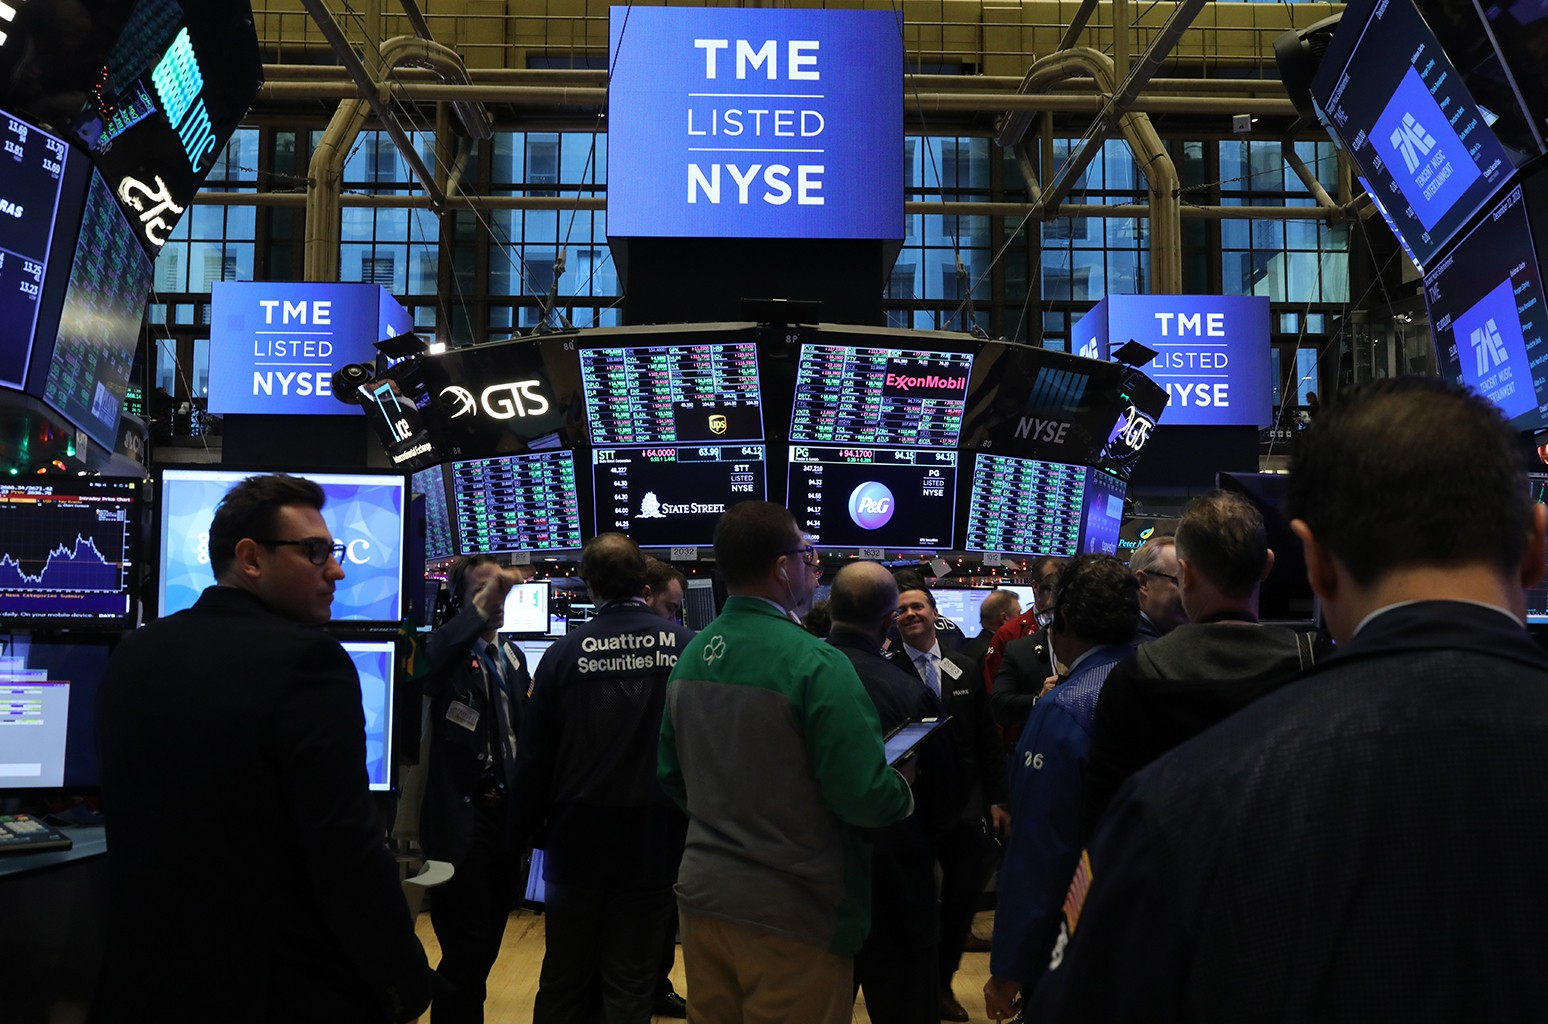 Traders work on the floor on the New York Stock Exchange (NYSE) as the Chinese music-streaming service Tencent Music launches its IPO on Dec. 12, 2018 in New York City.